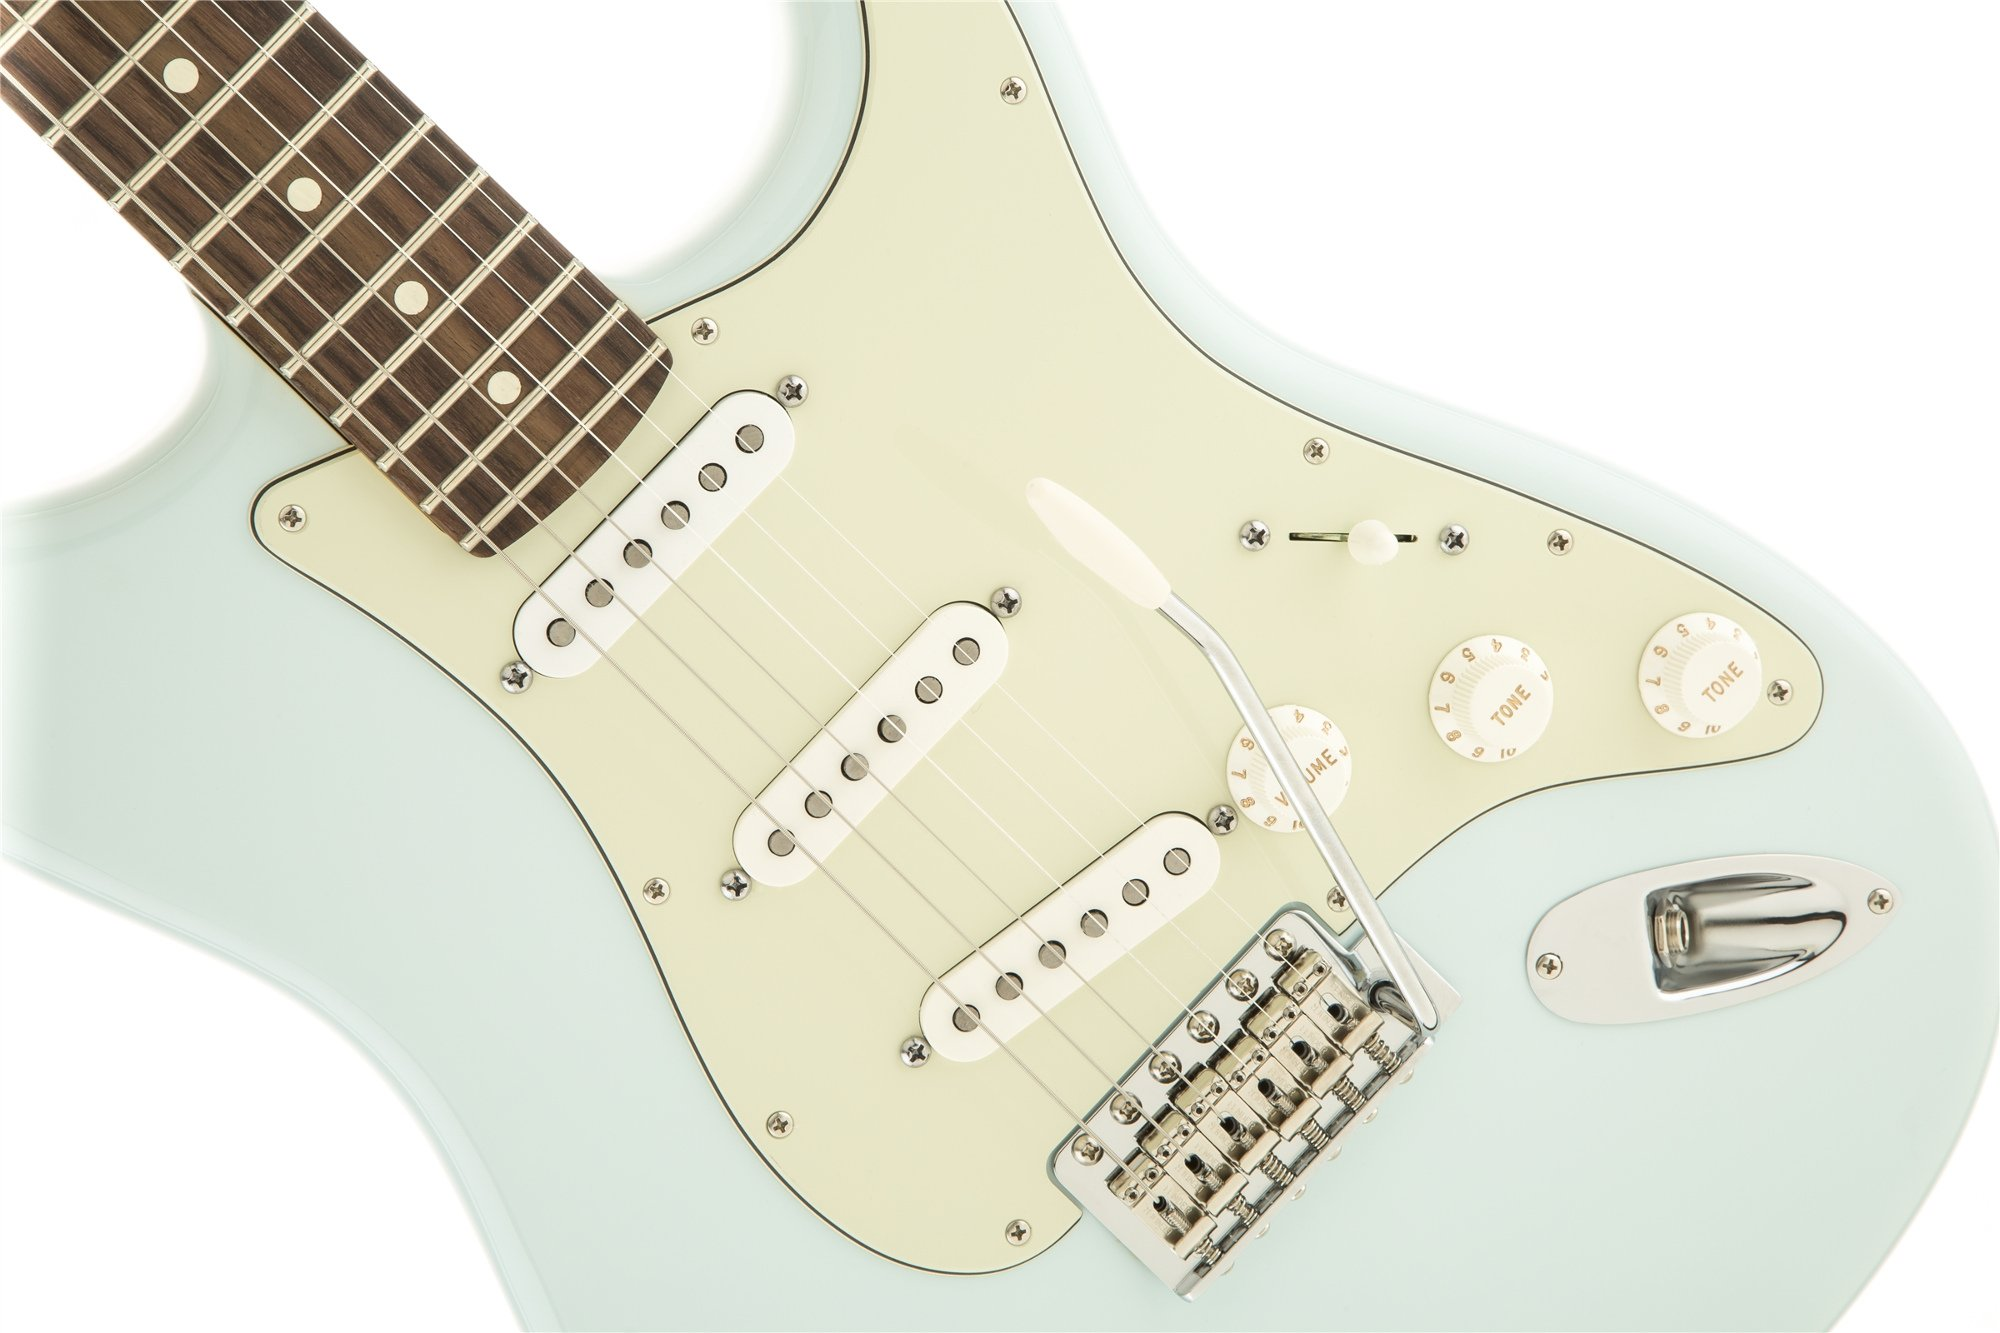 Electric Guitar with SSS Pickup Configuration in Sonic Blue with Rosewood Fingerboard